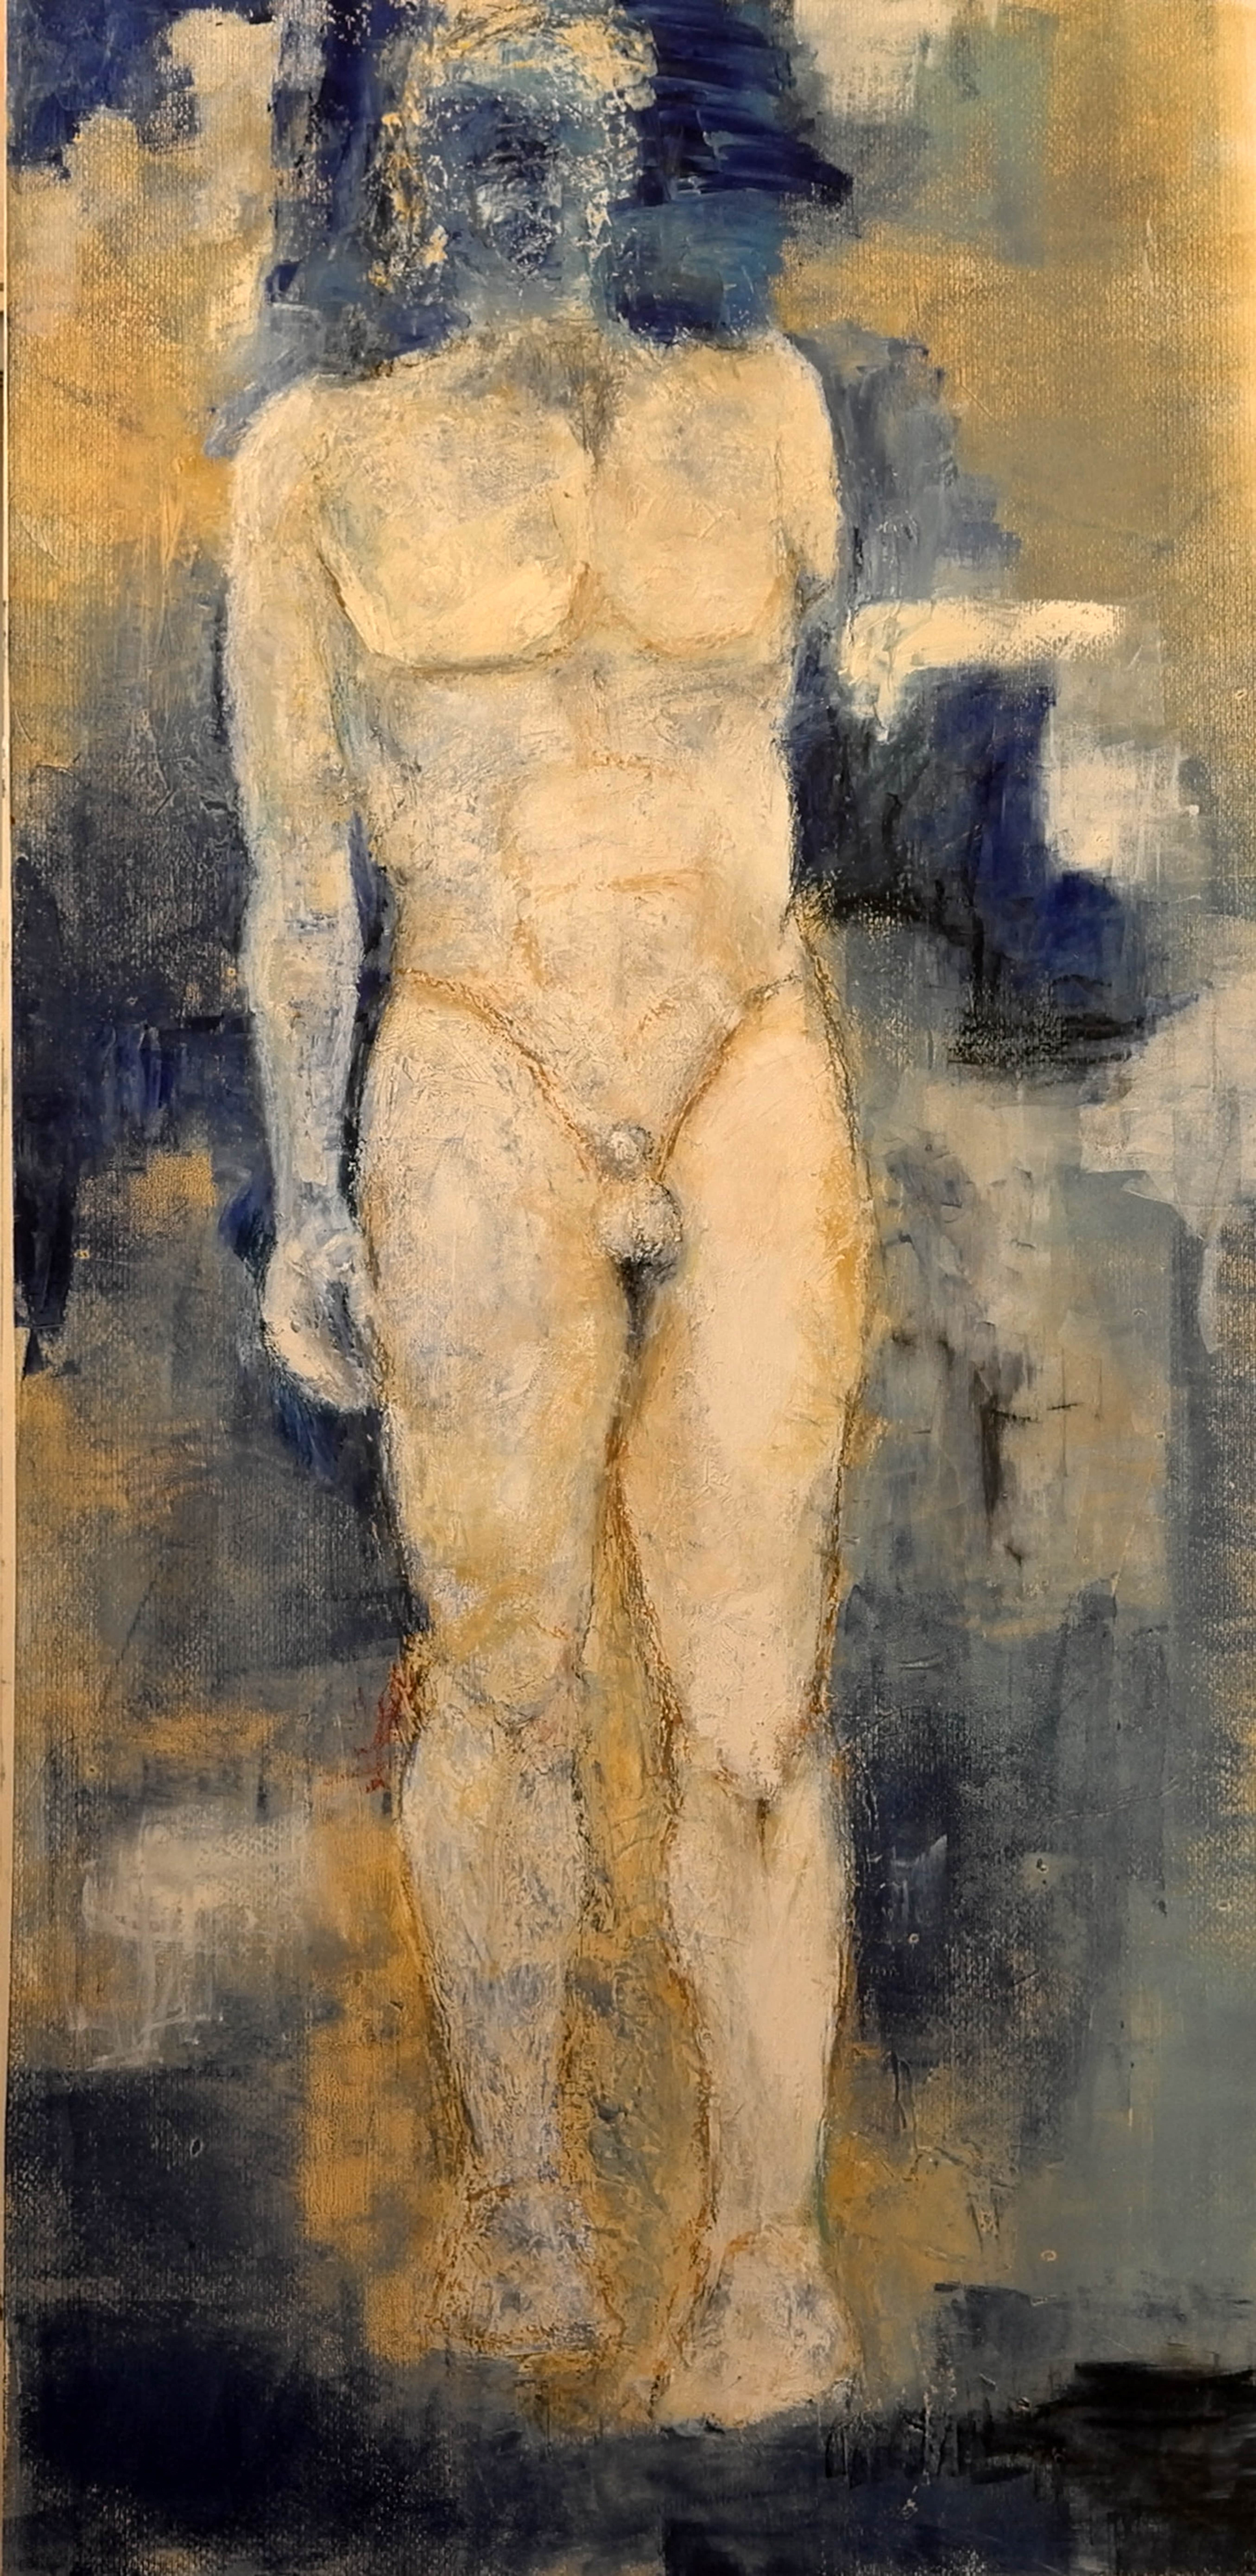 Kouros 1 - Oil and wax on paper, 100 x 45